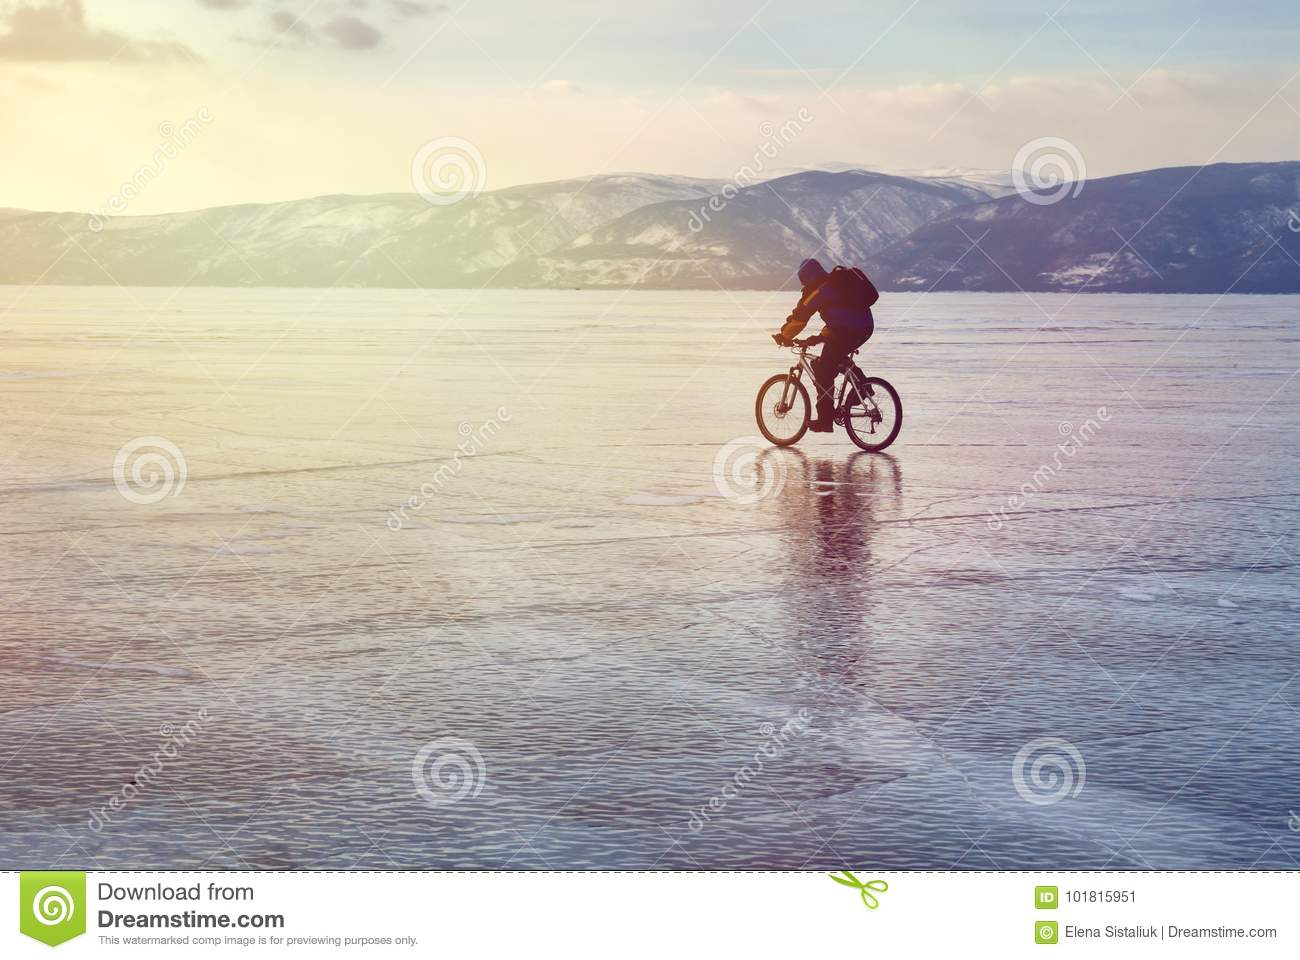 Ice biker traveler with backpacks on bike on ice of Lake Baikal. Against the background of sunset sky, ice surface. Winter sport